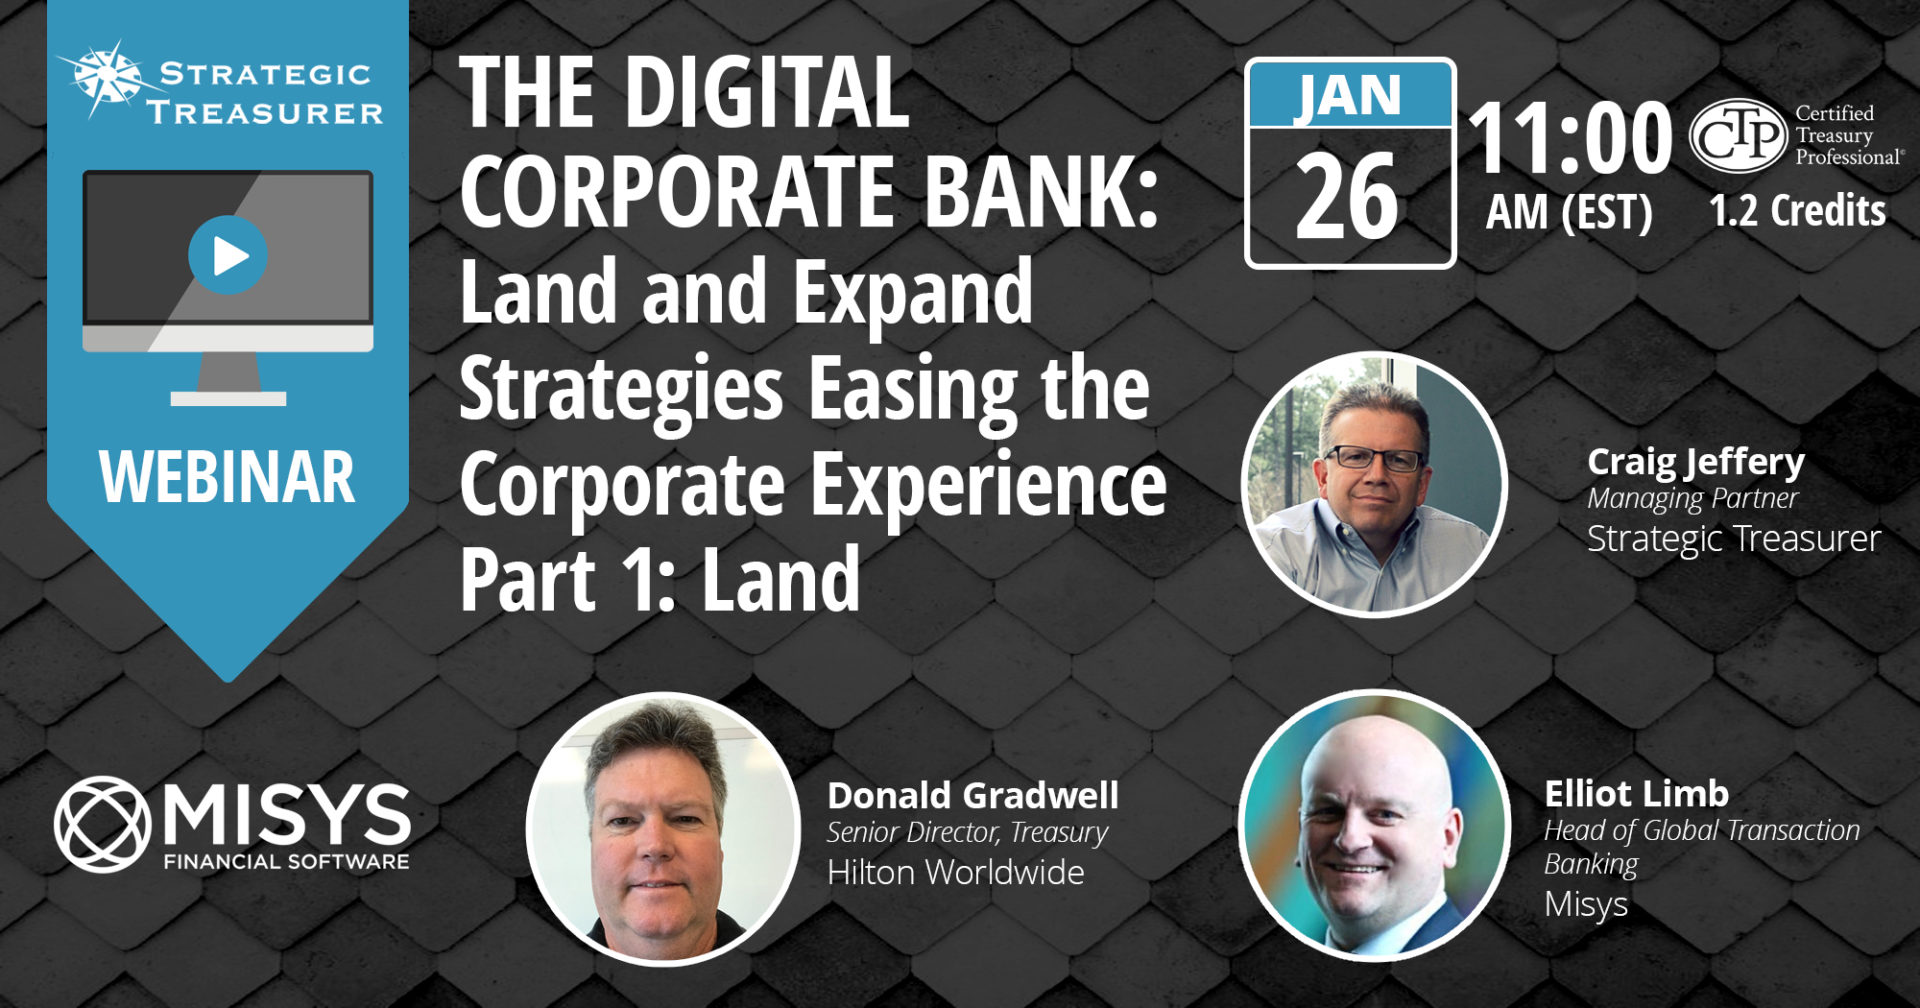 The Digital Corporate Bank: Land and Expand Strategies Easing the Corporate Experience | Part 1: Land